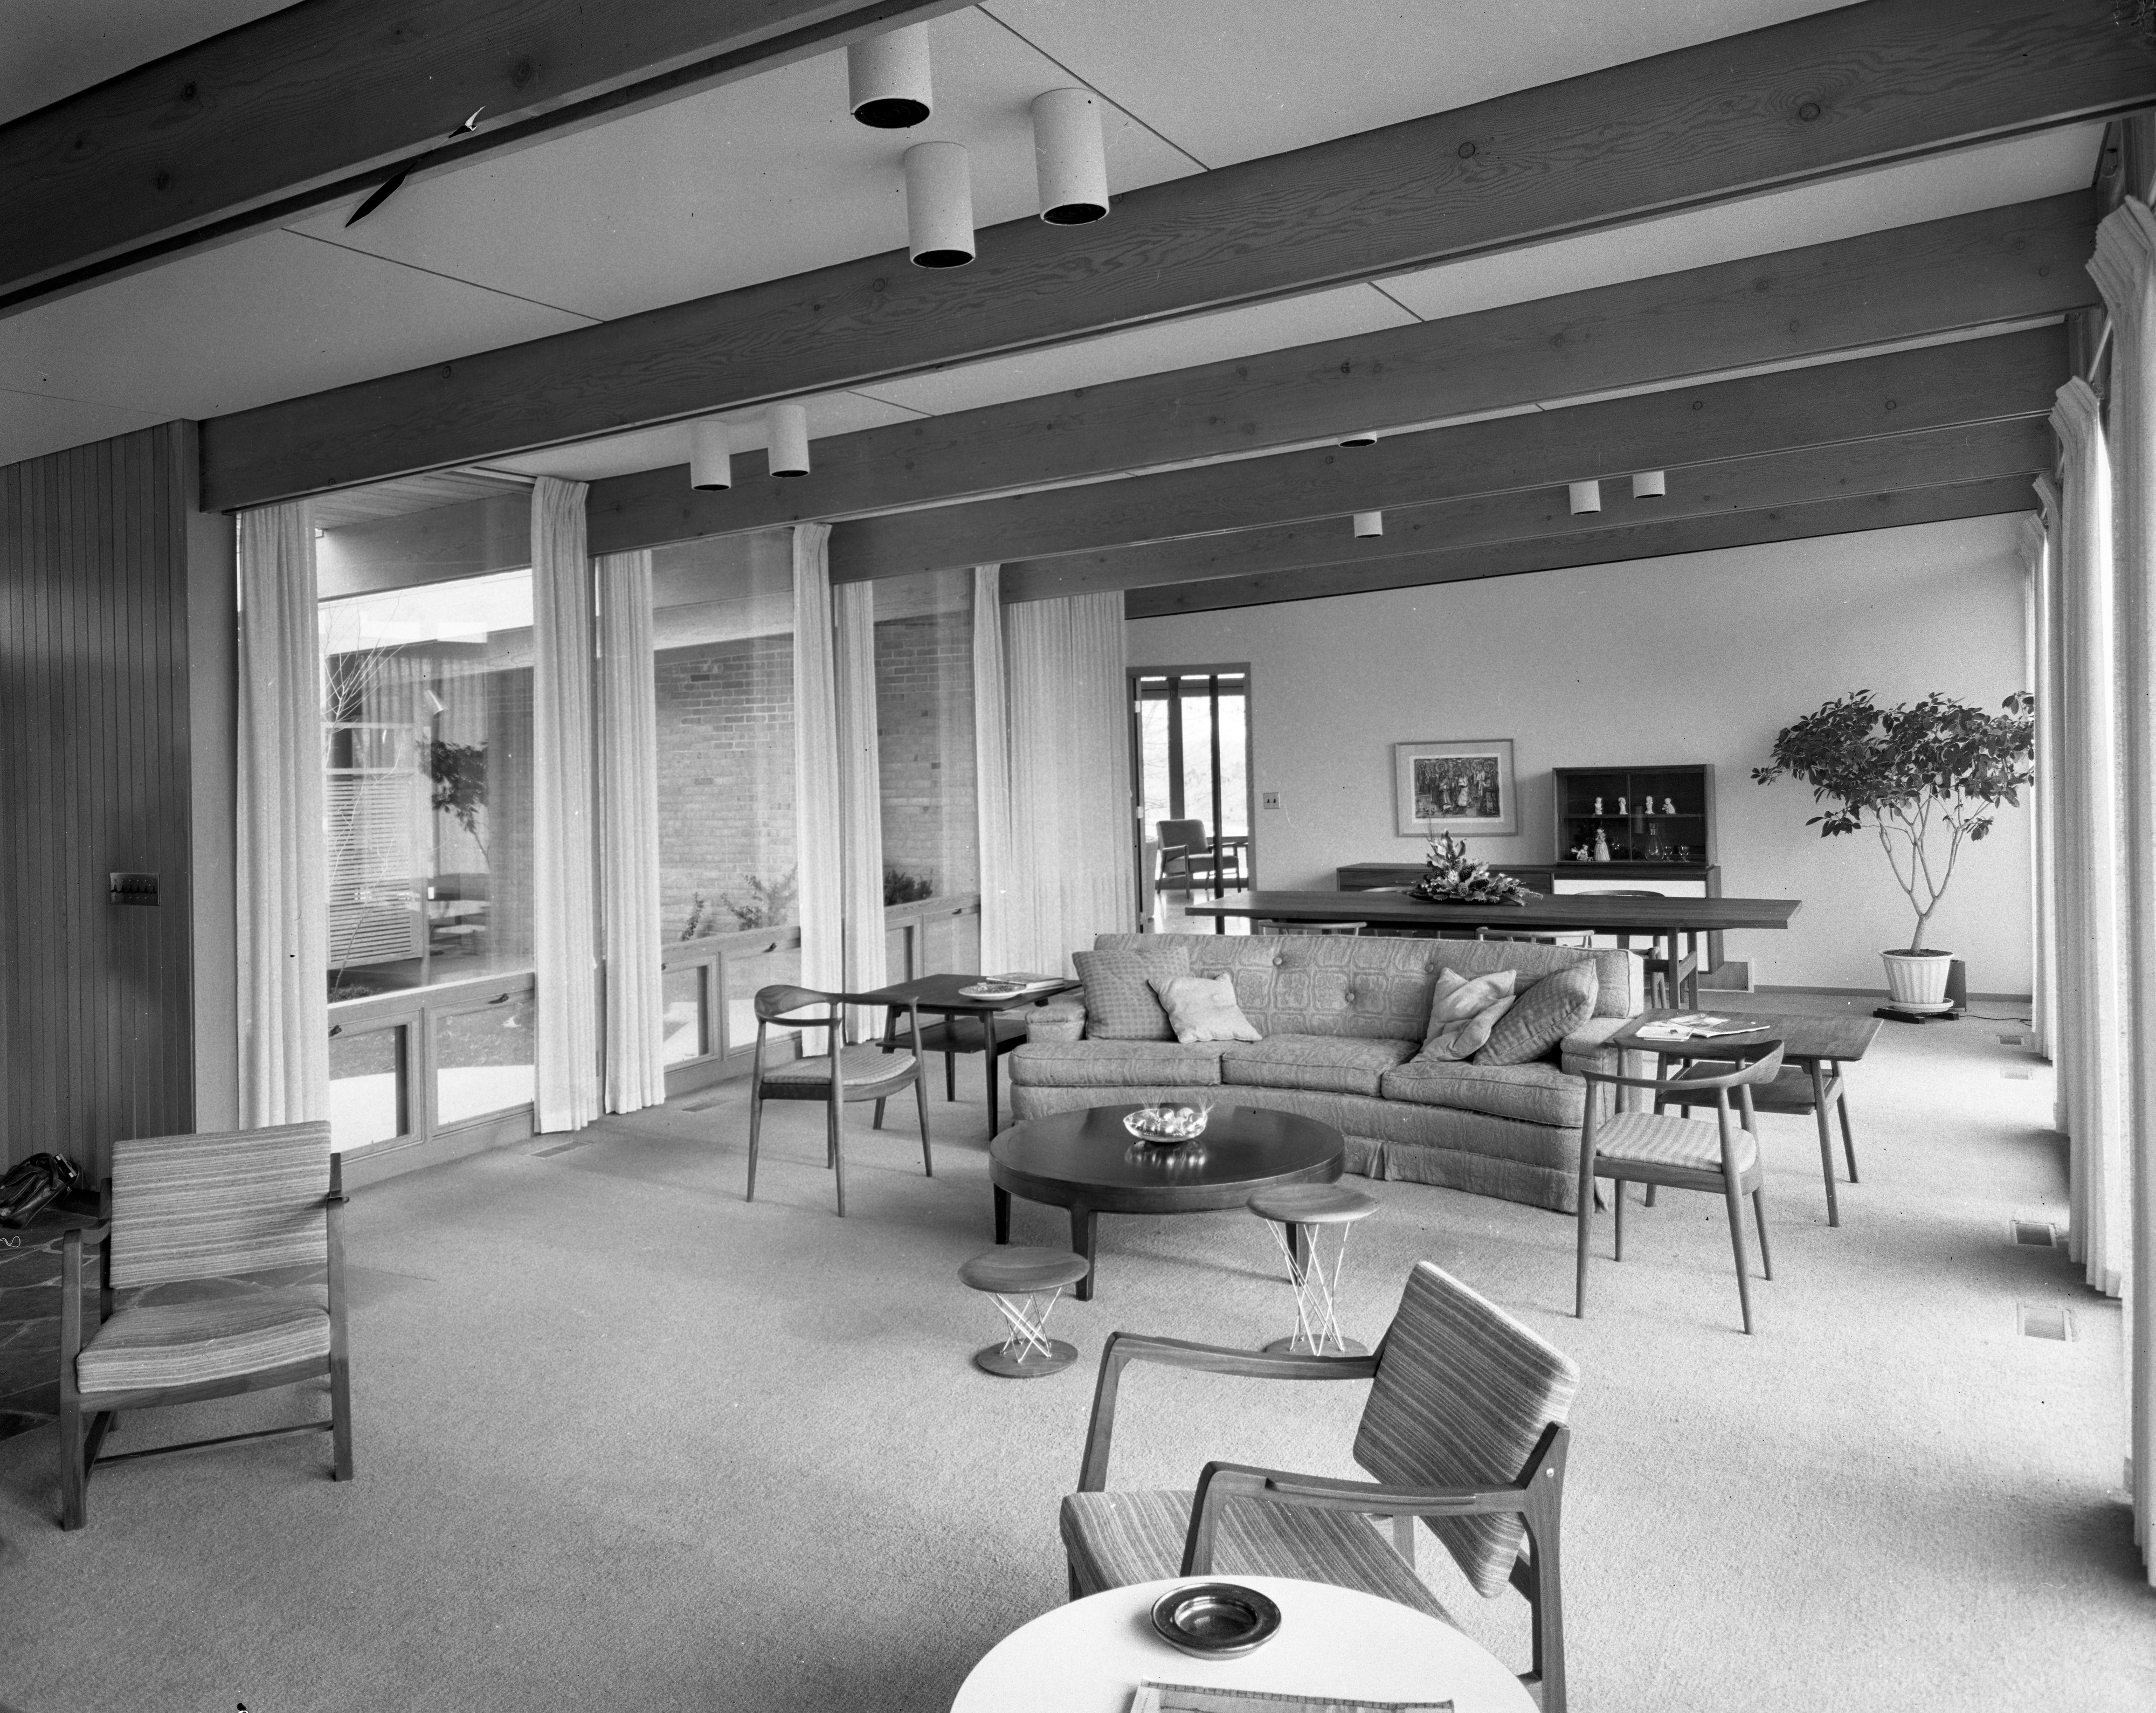 View to Living Room in Darrell and Jenny Campbell Home, January 1957 image